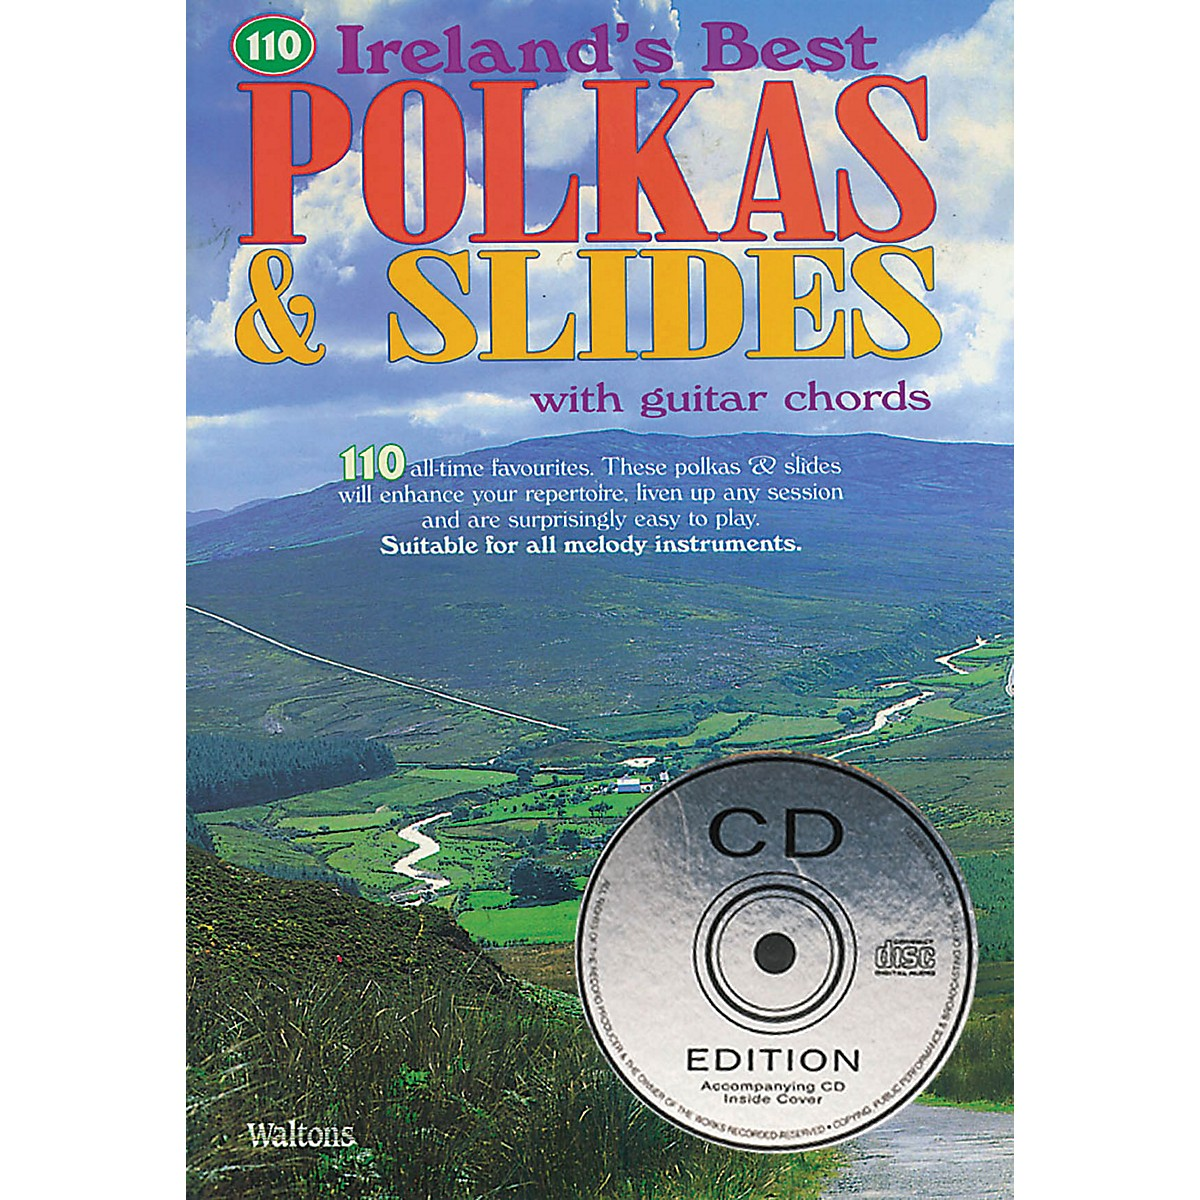 Waltons 110 Ireland's Best Polkas & Slides (with Guitar Chords) Waltons Irish Music Books Series